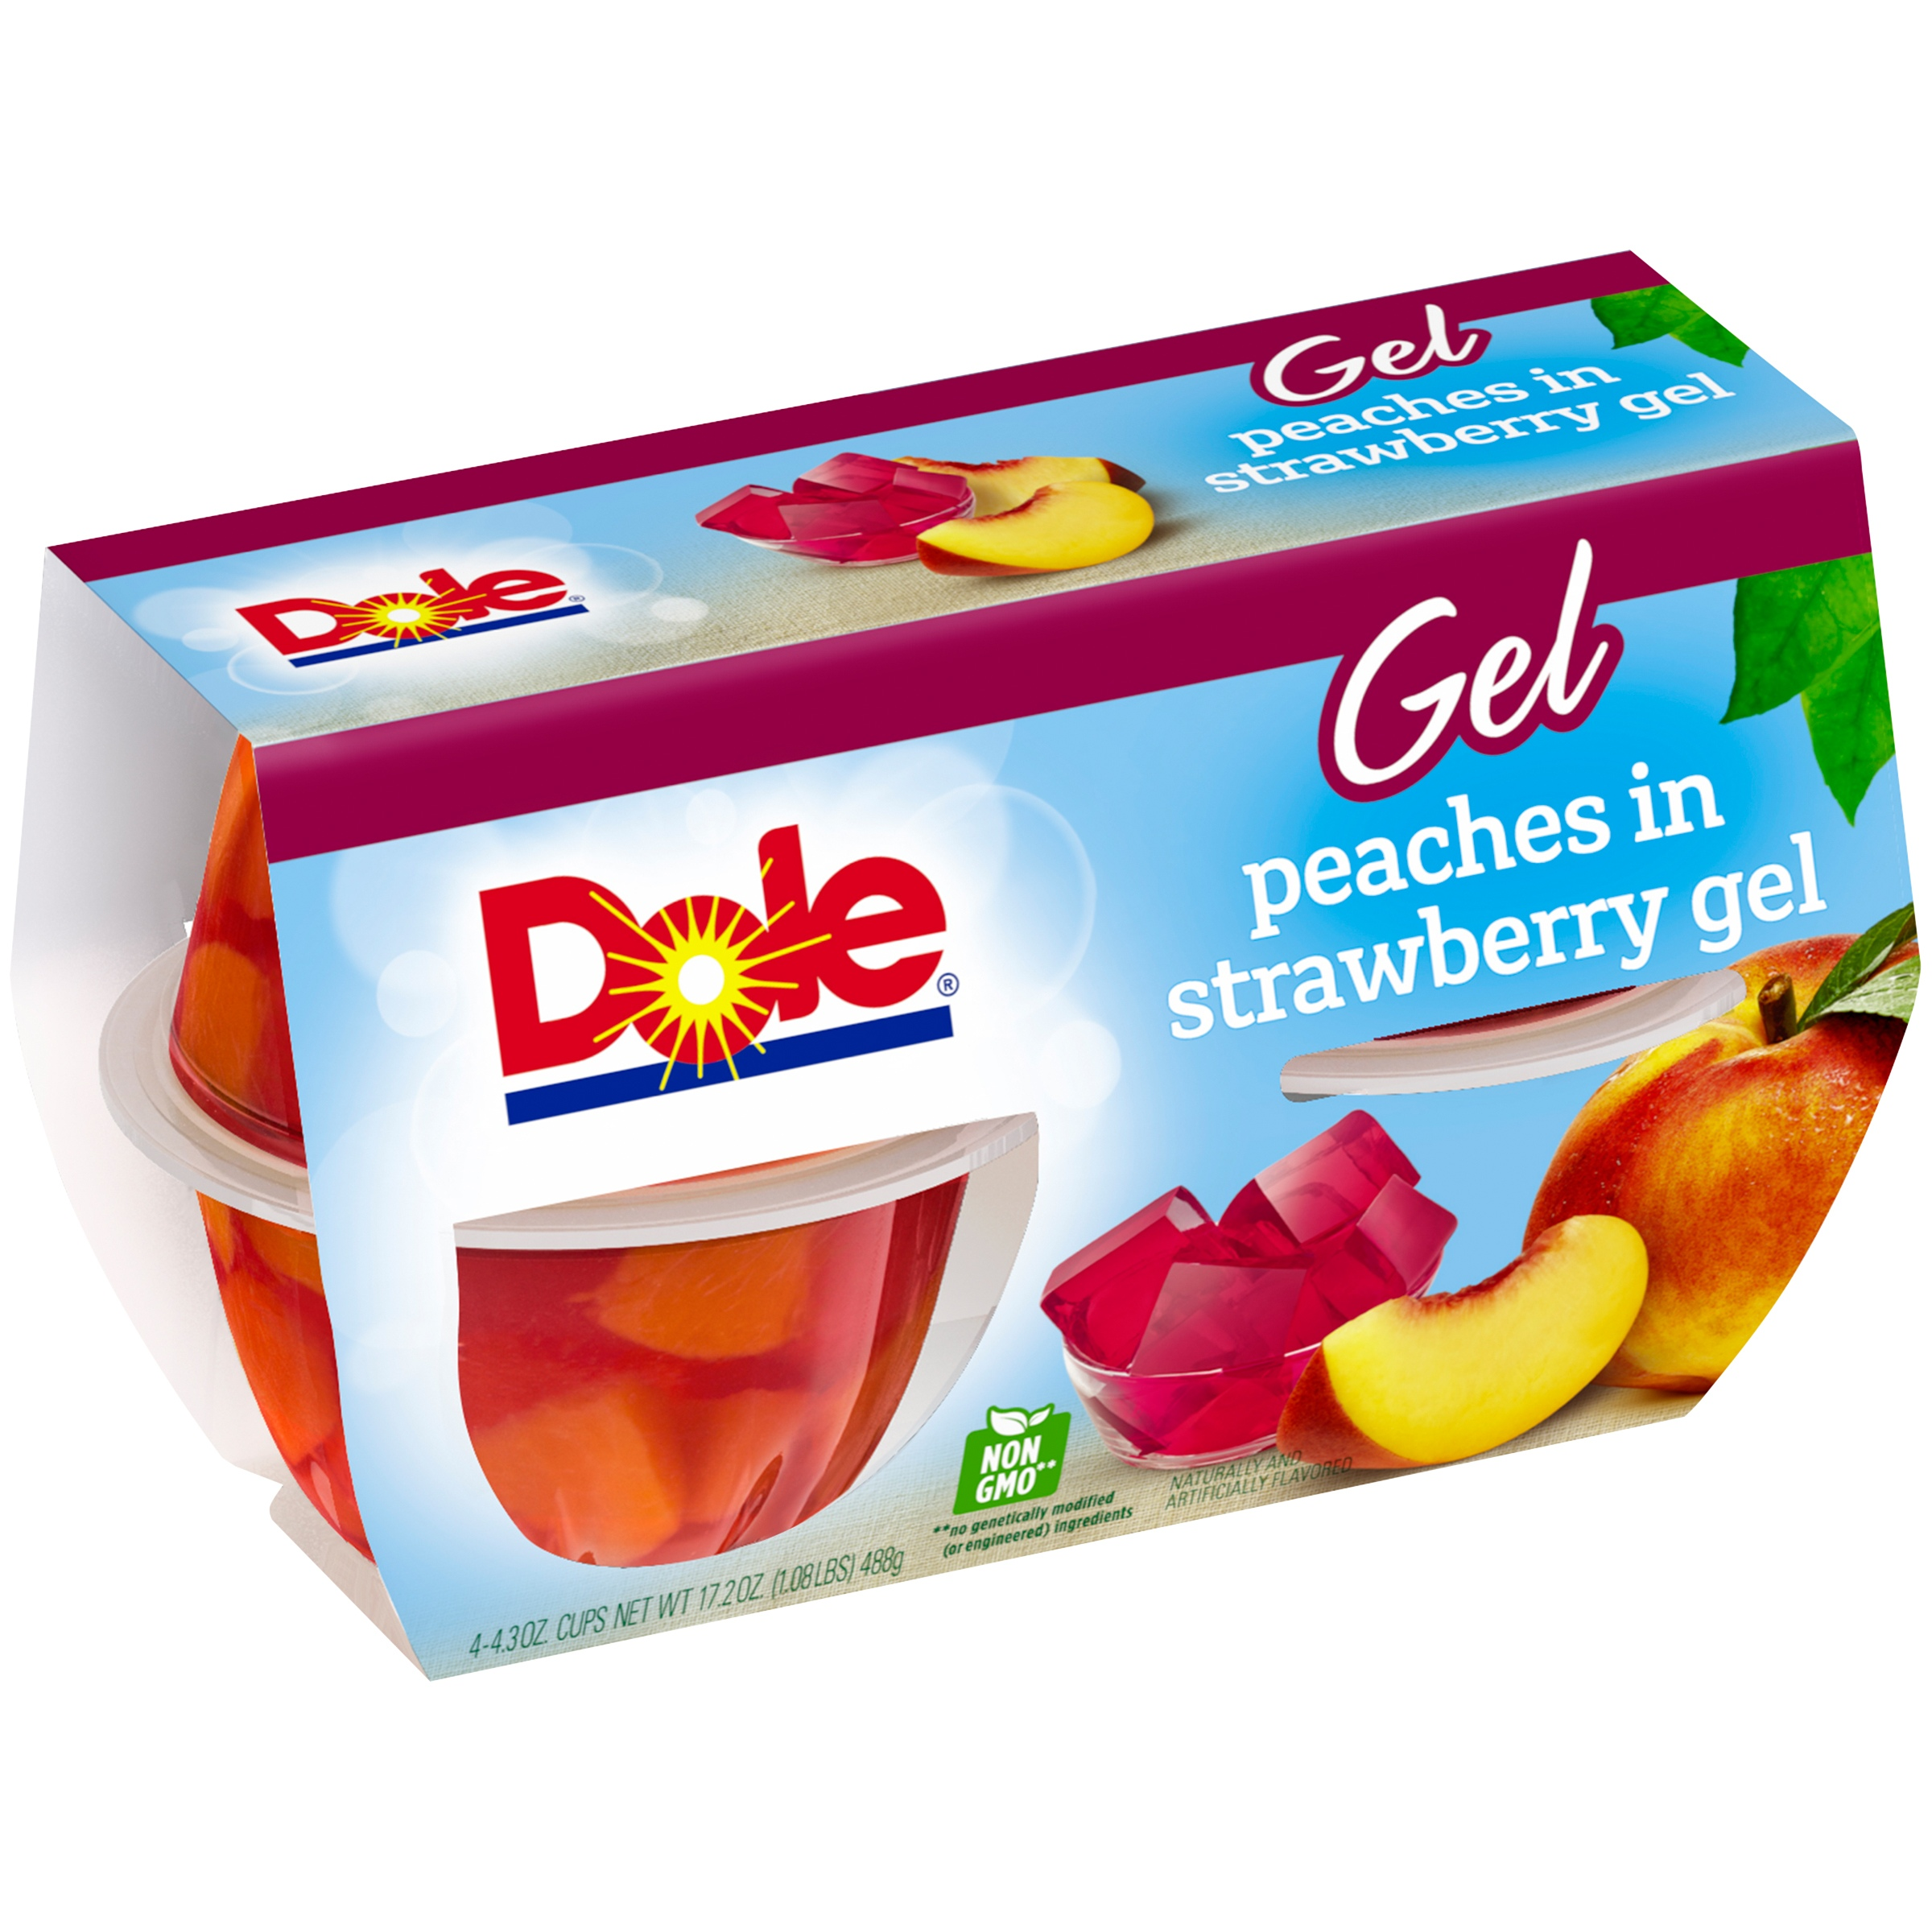 Dole Peaches in Strawberry Gel, 4.3 oz, 4 count